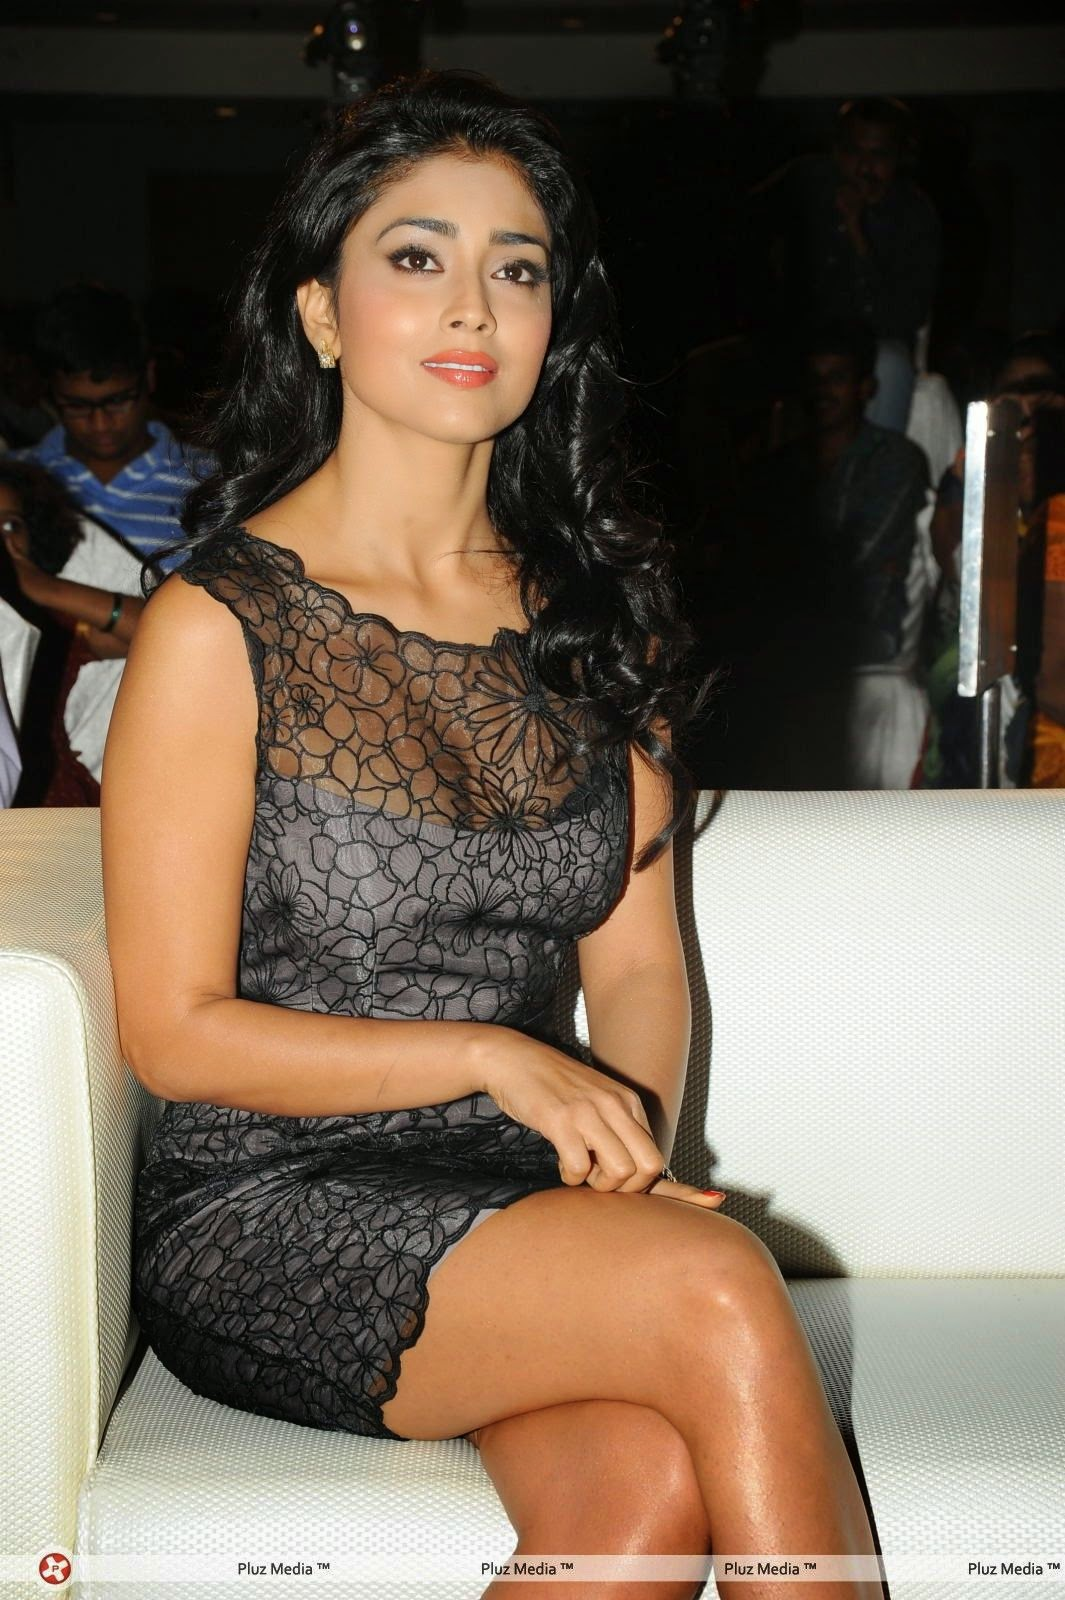 shriya saran bra visible